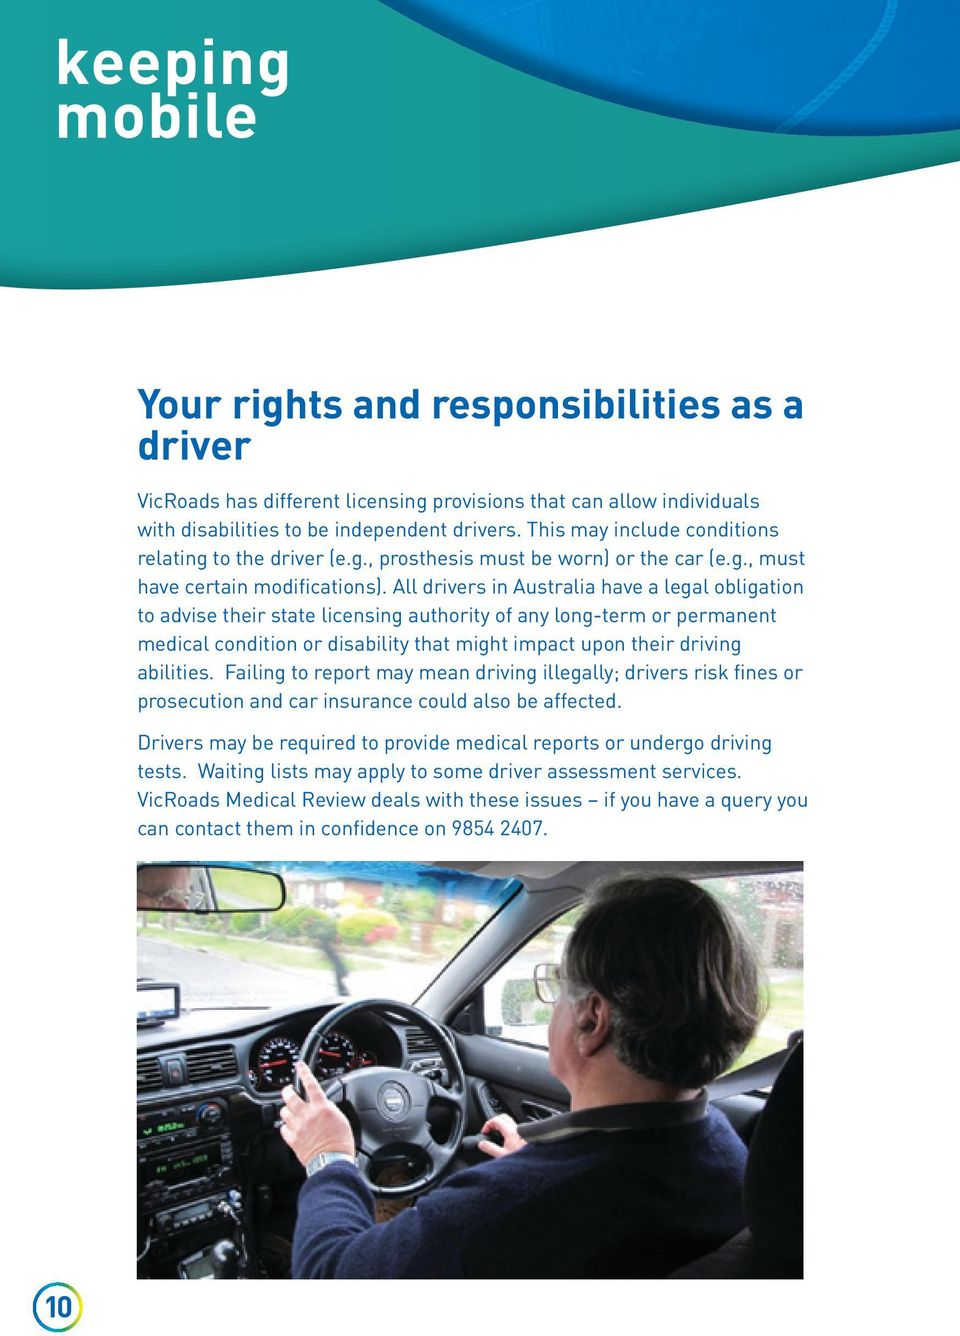 All drivers in Australia have a legal obligation to advise their state licensing authority of any long-term or permanent medical condition or disability that might impact upon their driving abilities.